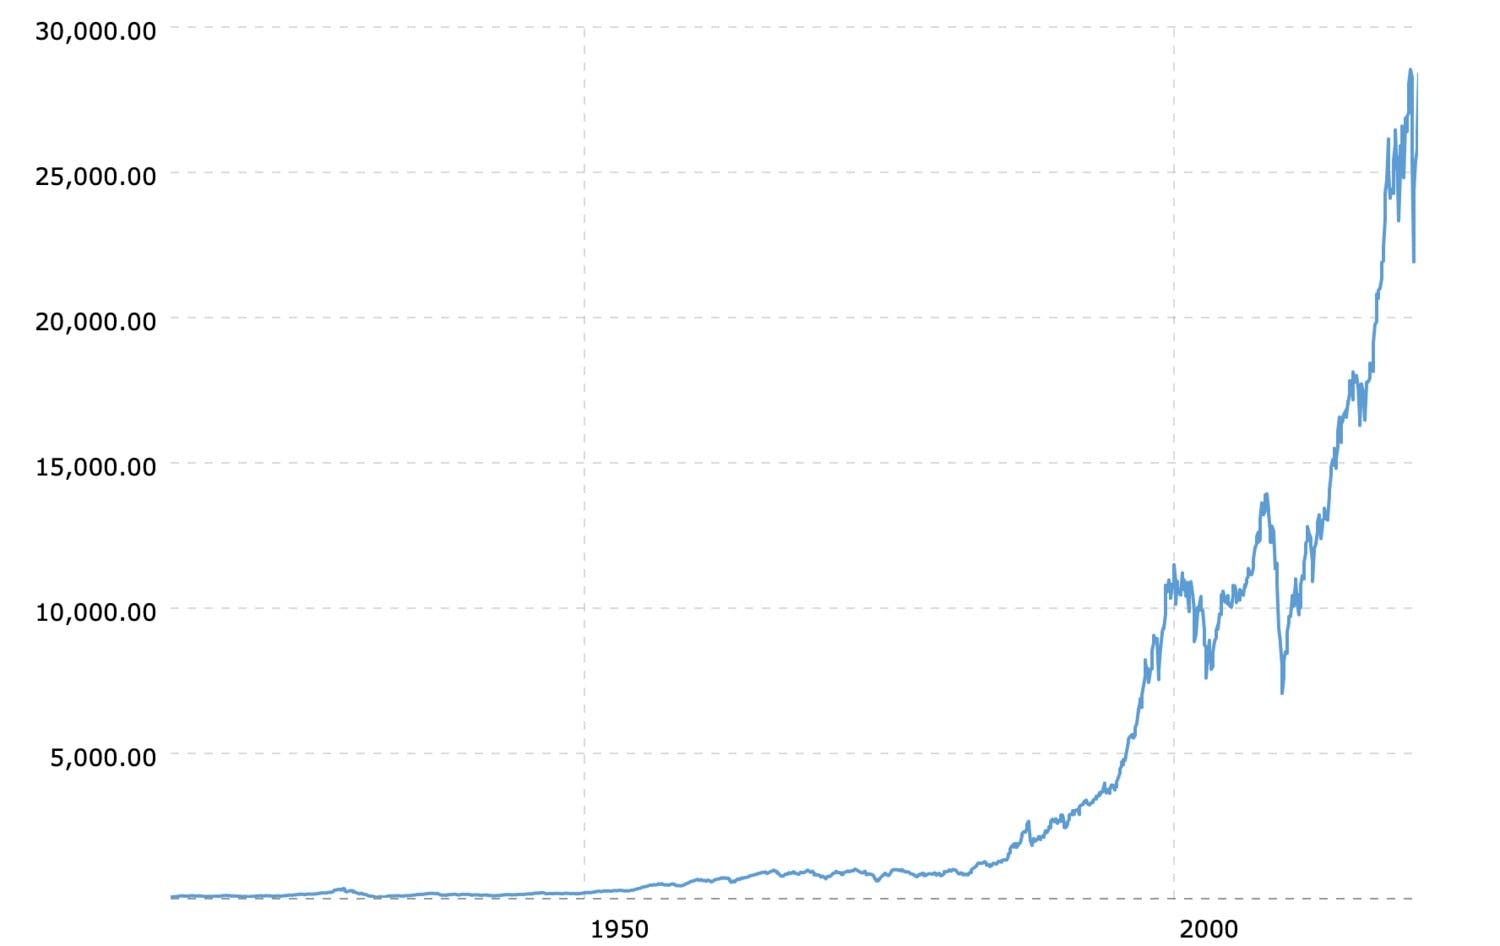 Dow Jones Industrial Average (DJIA) 100-Year Historical Prices